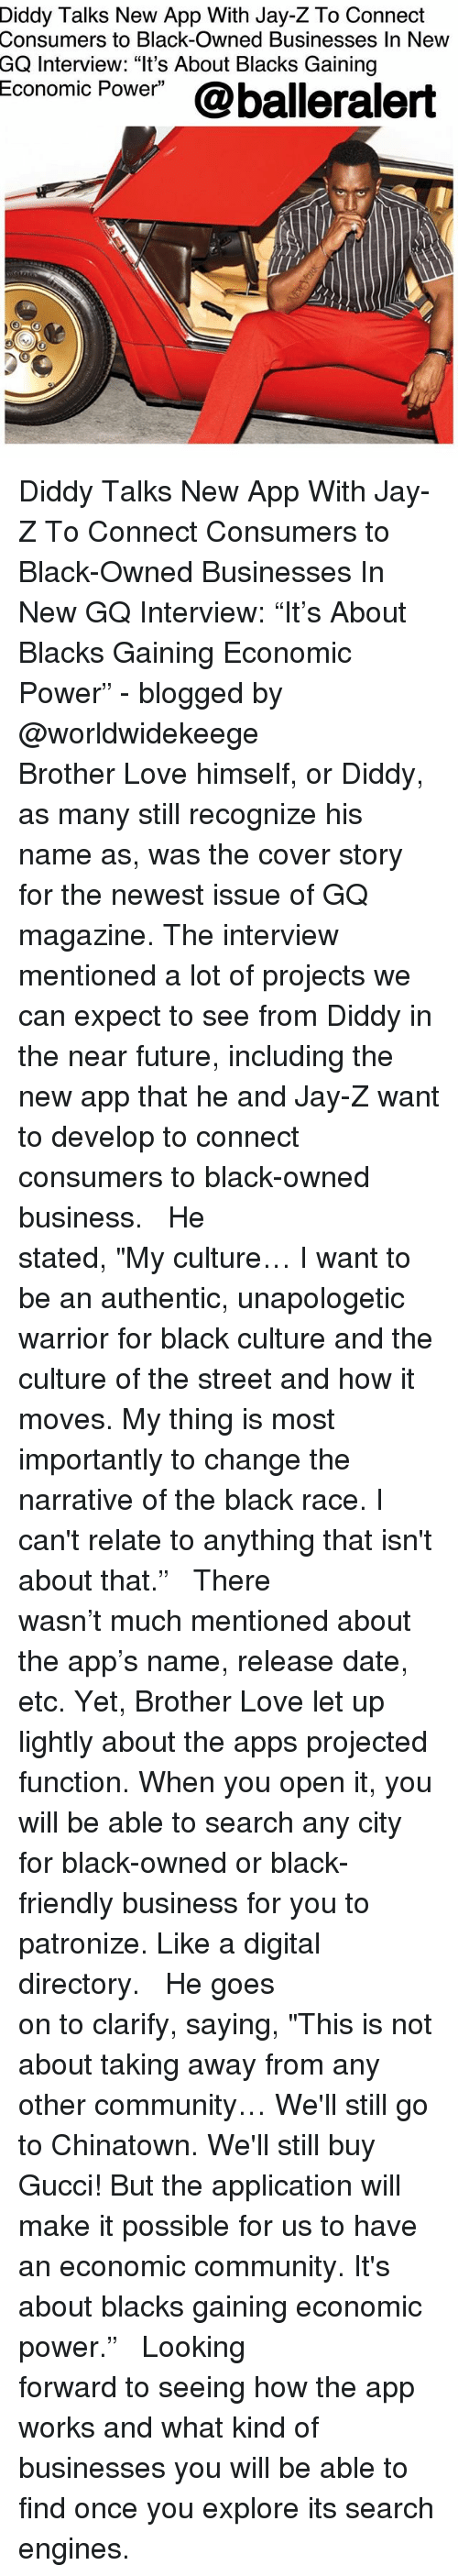 "Community, Future, and Gucci: Diddy  Talks New App With Jay-Z To Connect  Consumers to Black-Owned Businesses In New  GQ Interview: ""It's About Blacks Gaining  Economic Power""@balleralert Diddy Talks New App With ‪Jay-Z‬ To Connect Consumers to Black-Owned Businesses In New GQ Interview: ""It's About Blacks Gaining Economic Power"" - blogged by @worldwidekeege ⠀⠀⠀⠀⠀⠀⠀⠀⠀ ⠀⠀⠀⠀⠀⠀⠀⠀⠀ Brother Love himself, or Diddy, as many still recognize his name as, was the cover story for the newest issue of GQ magazine. The interview mentioned a lot of projects we can expect to see from Diddy in the near future, including the new app that he and ‪Jay-Z‬ want to develop to connect consumers to black-owned business. ⠀⠀⠀⠀⠀⠀⠀⠀⠀ ⠀⠀⠀⠀⠀⠀⠀⠀⠀ He stated, ""My culture… I want to be an authentic, unapologetic warrior for black culture and the culture of the street and how it moves. My thing is most importantly to change the narrative of the black race. I can't relate to anything that isn't about that."" ⠀⠀⠀⠀⠀⠀⠀⠀⠀ ⠀⠀⠀⠀⠀⠀⠀⠀⠀ There wasn't much mentioned about the app's name, release date, etc. Yet, Brother Love let up lightly about the apps projected function. When you open it, you will be able to search any city for black-owned or black-friendly business for you to patronize. Like a digital directory. ⠀⠀⠀⠀⠀⠀⠀⠀⠀ ⠀⠀⠀⠀⠀⠀⠀⠀⠀ He goes on to clarify, saying, ""This is not about taking away from any other community… We'll still go to Chinatown. We'll still buy Gucci! But the application will make it possible for us to have an economic community. It's about blacks gaining economic power."" ⠀⠀⠀⠀⠀⠀⠀⠀⠀ ⠀⠀⠀⠀⠀⠀⠀⠀ Looking forward to seeing how the app works and what kind of businesses you will be able to find once you explore its search engines."